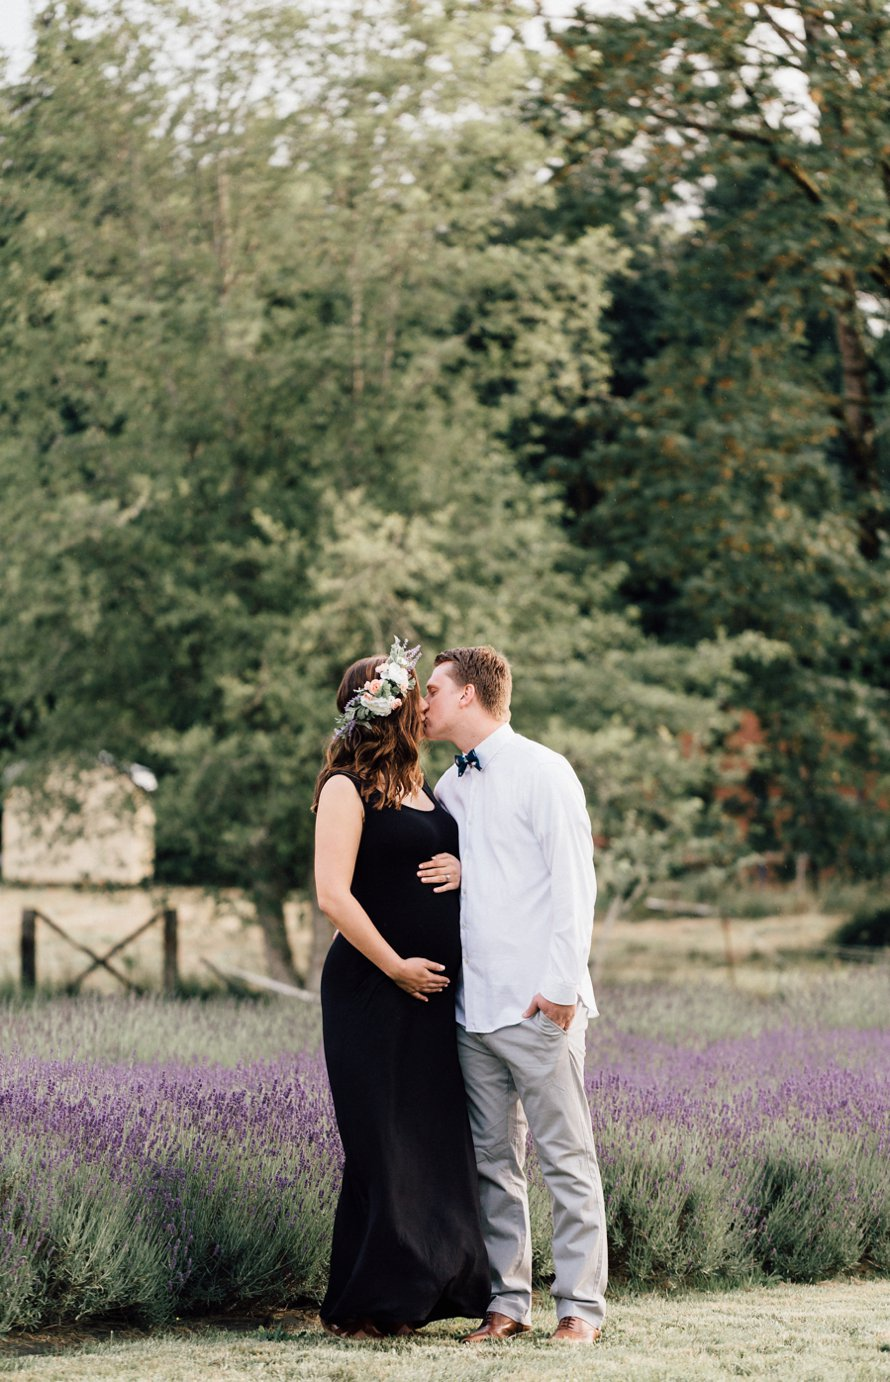 Romantic Lavender Field Maternity Session by Something Minted Photography